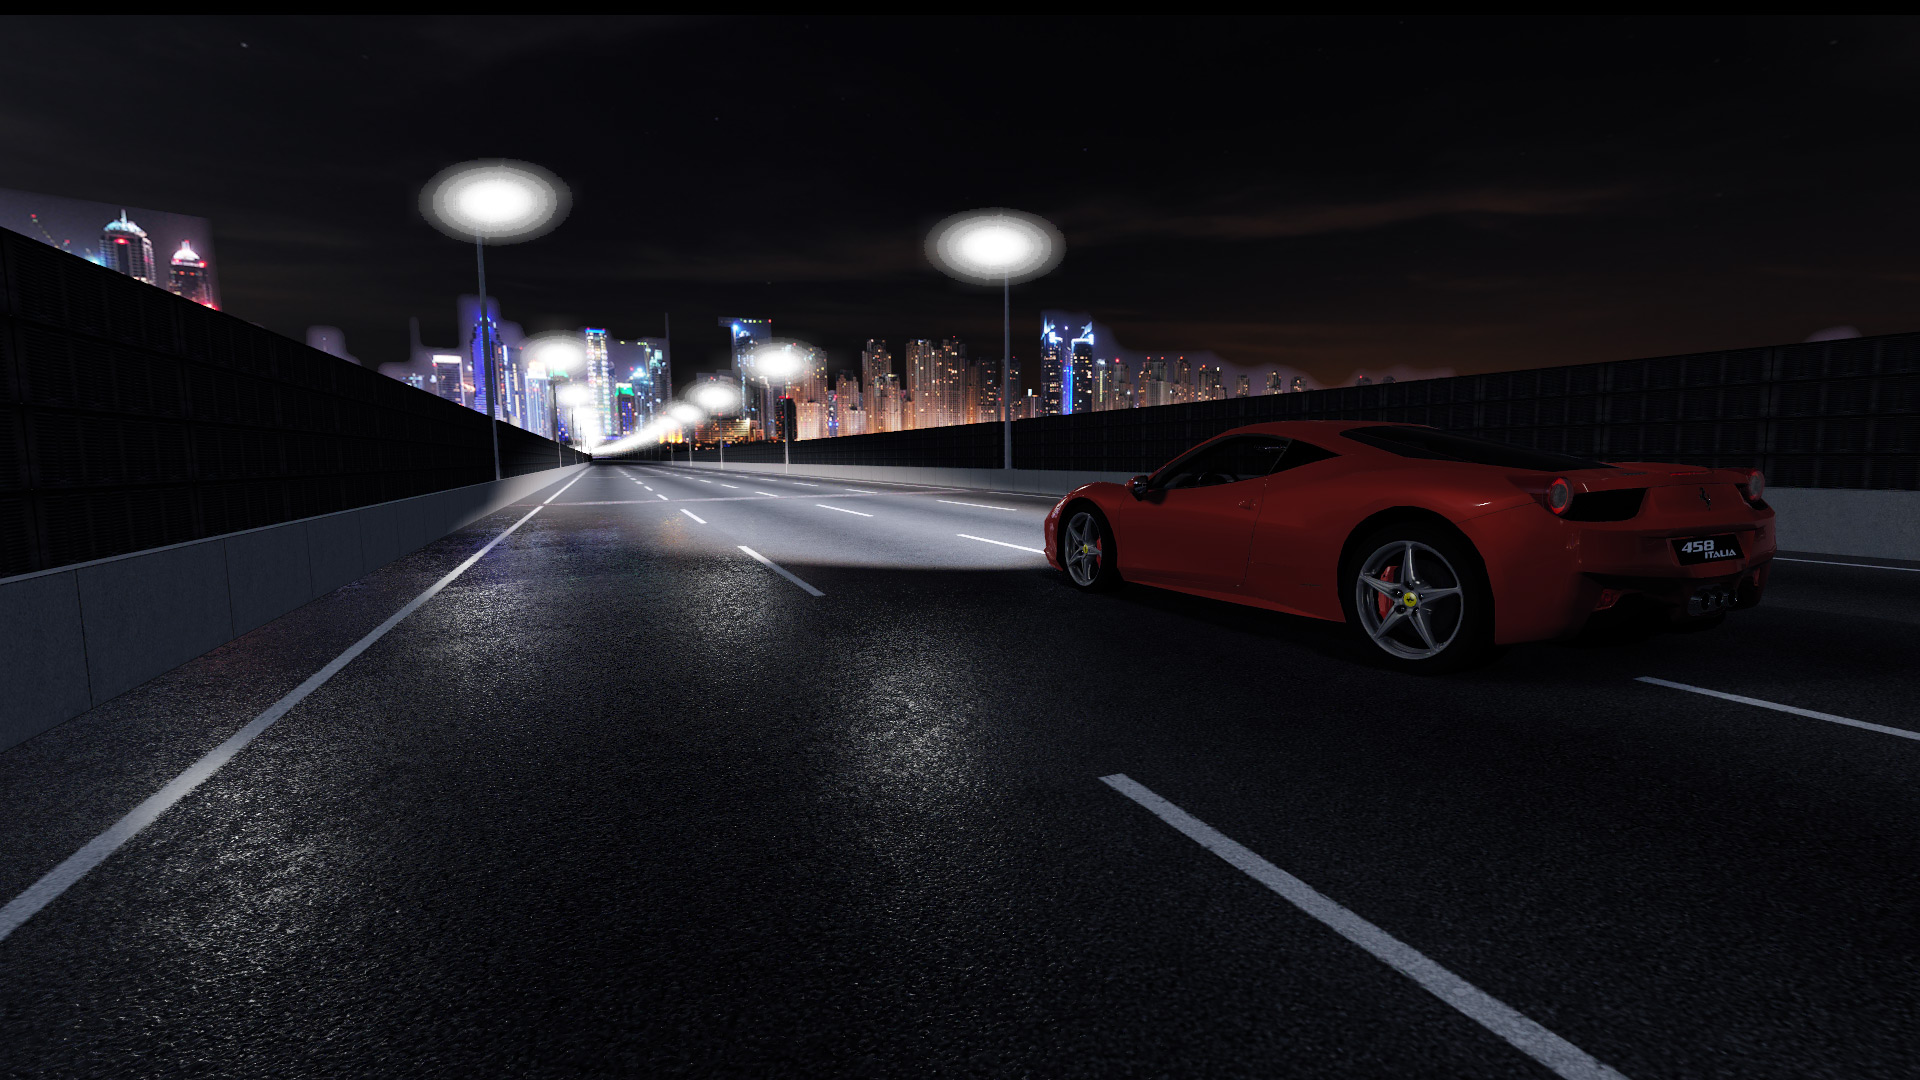 ferrari_wet_road_01.jpg